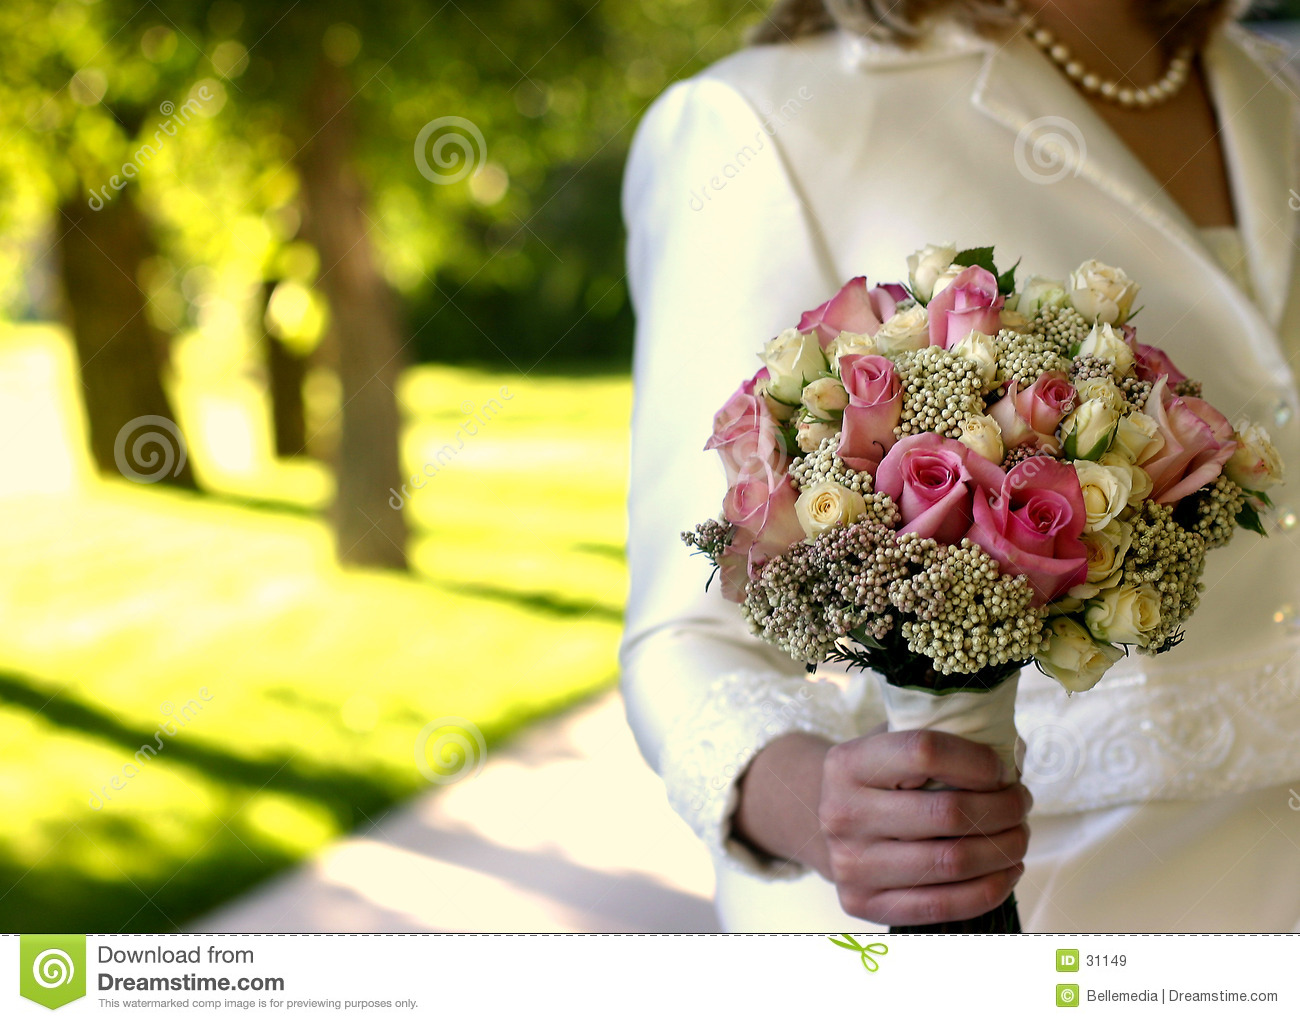 Flowers for a bride at her wedding